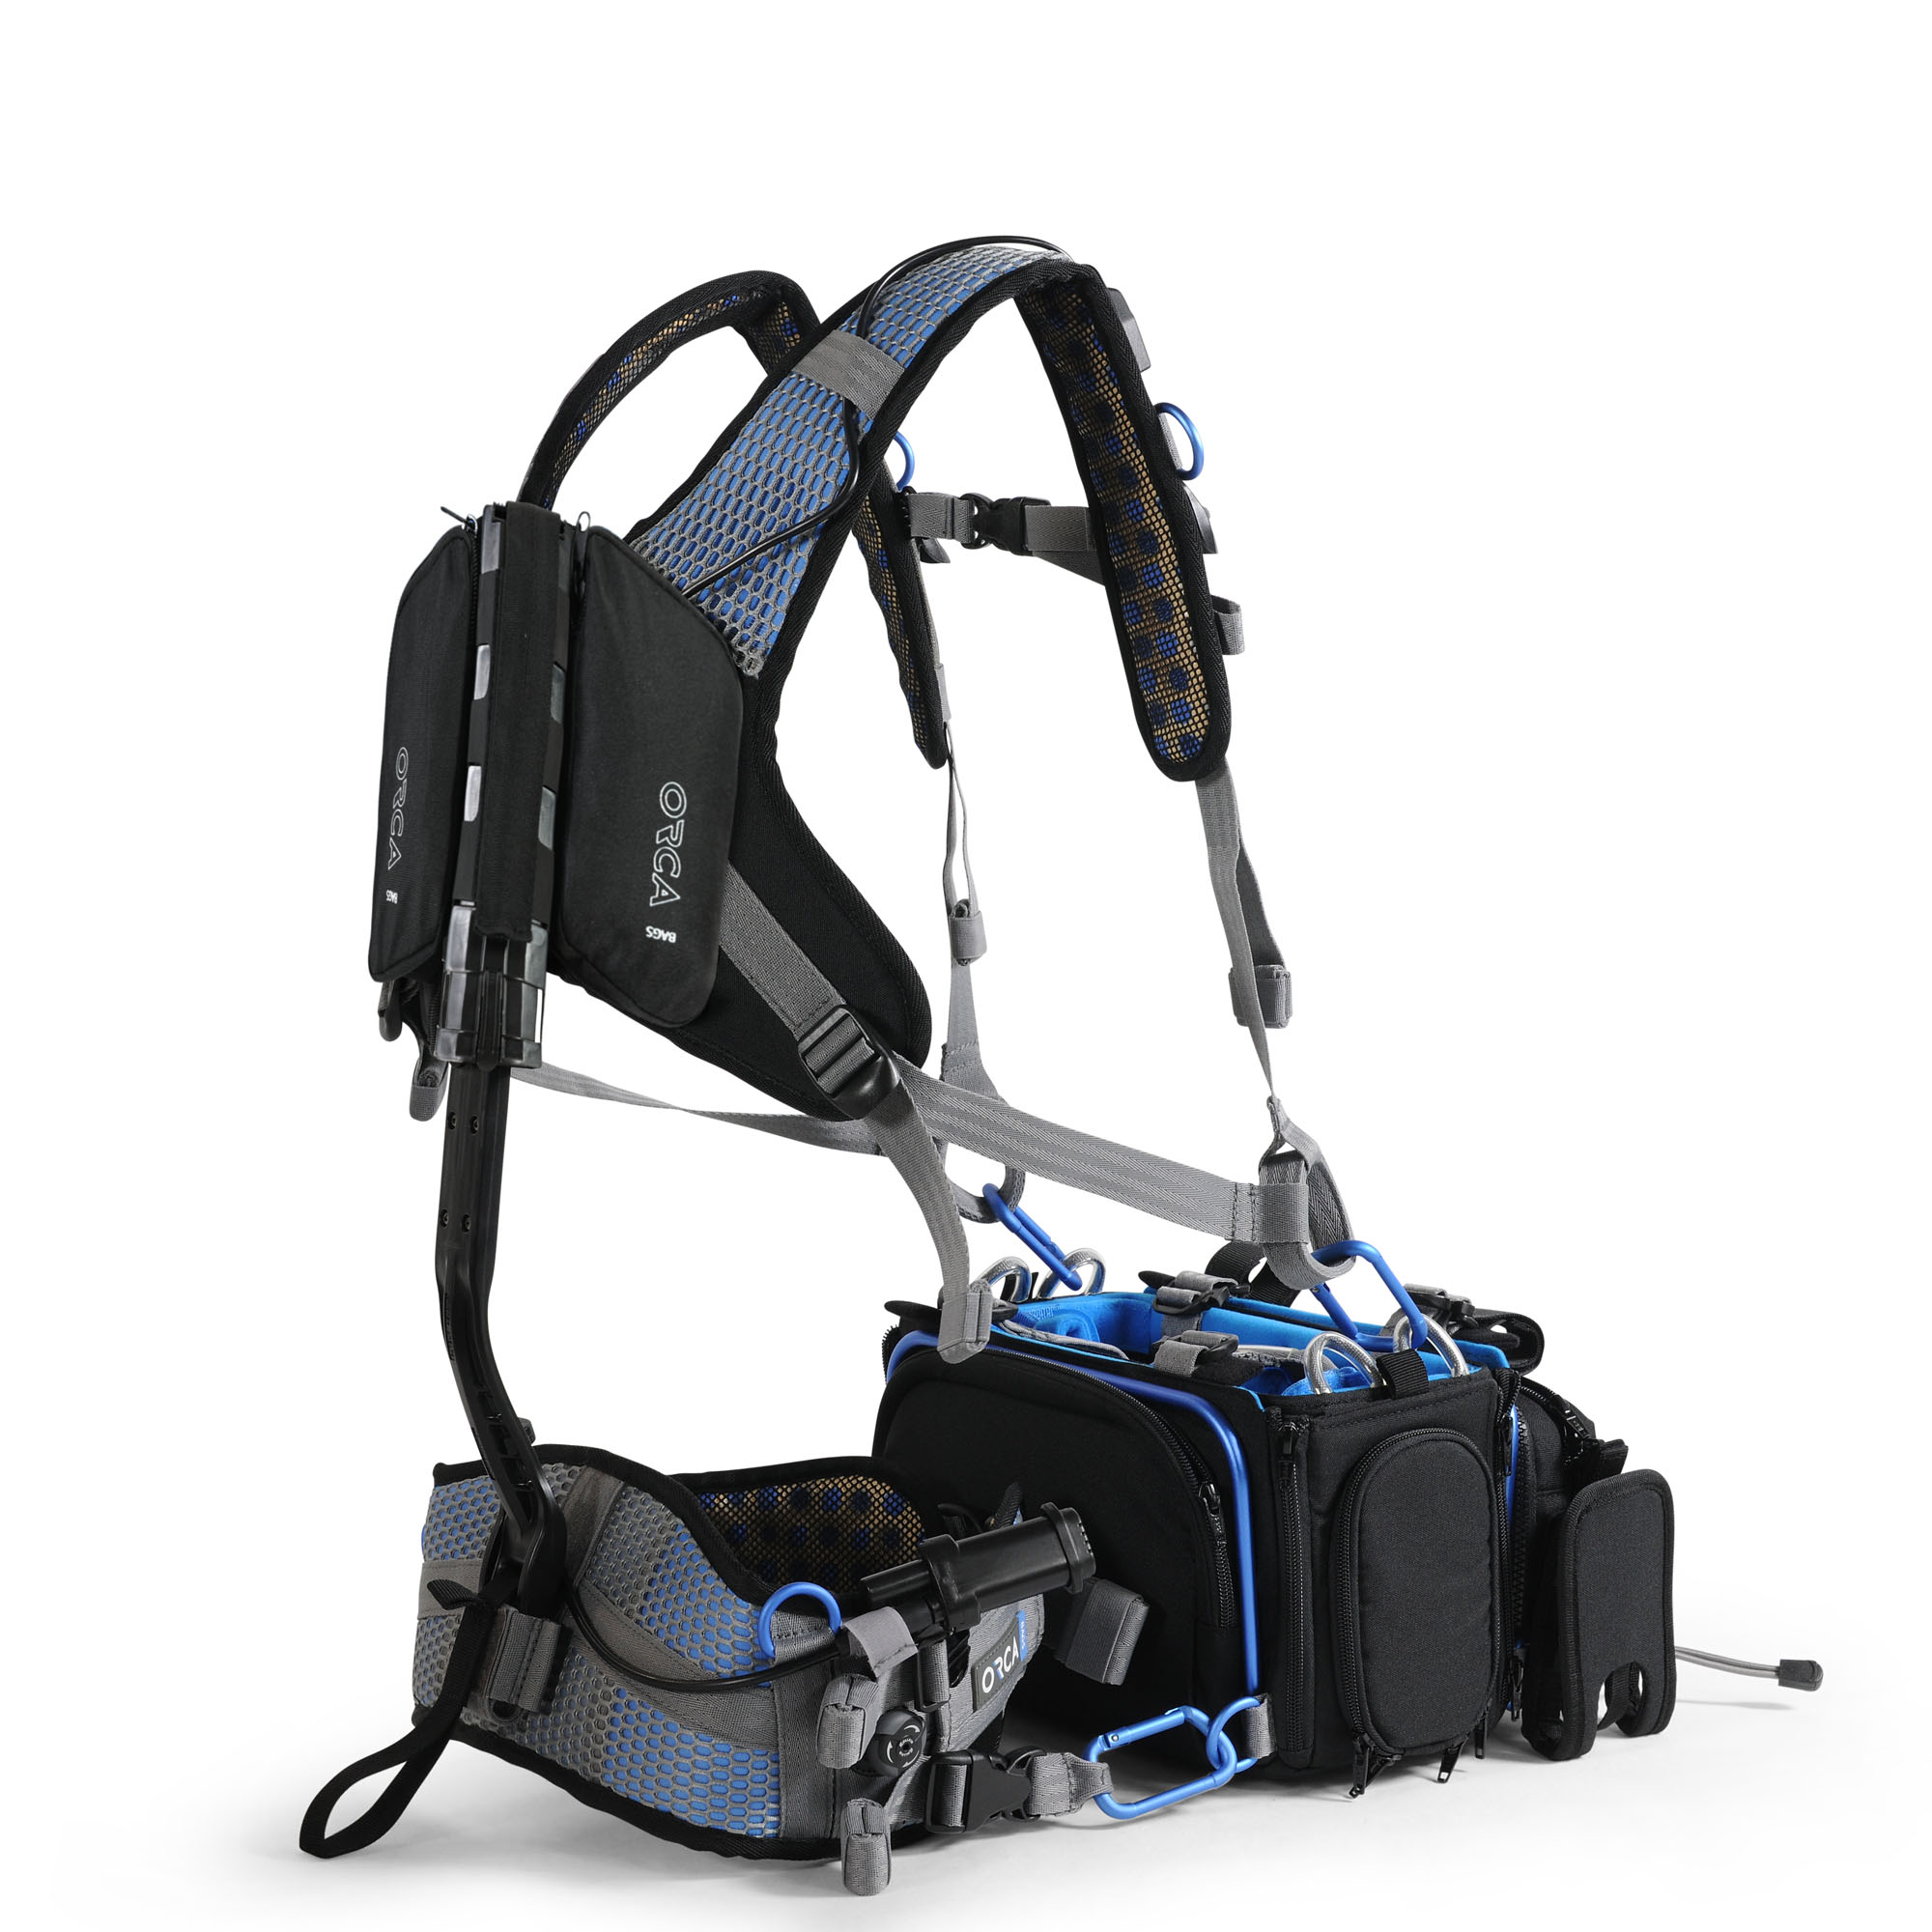 Orca bags - Gear in motion